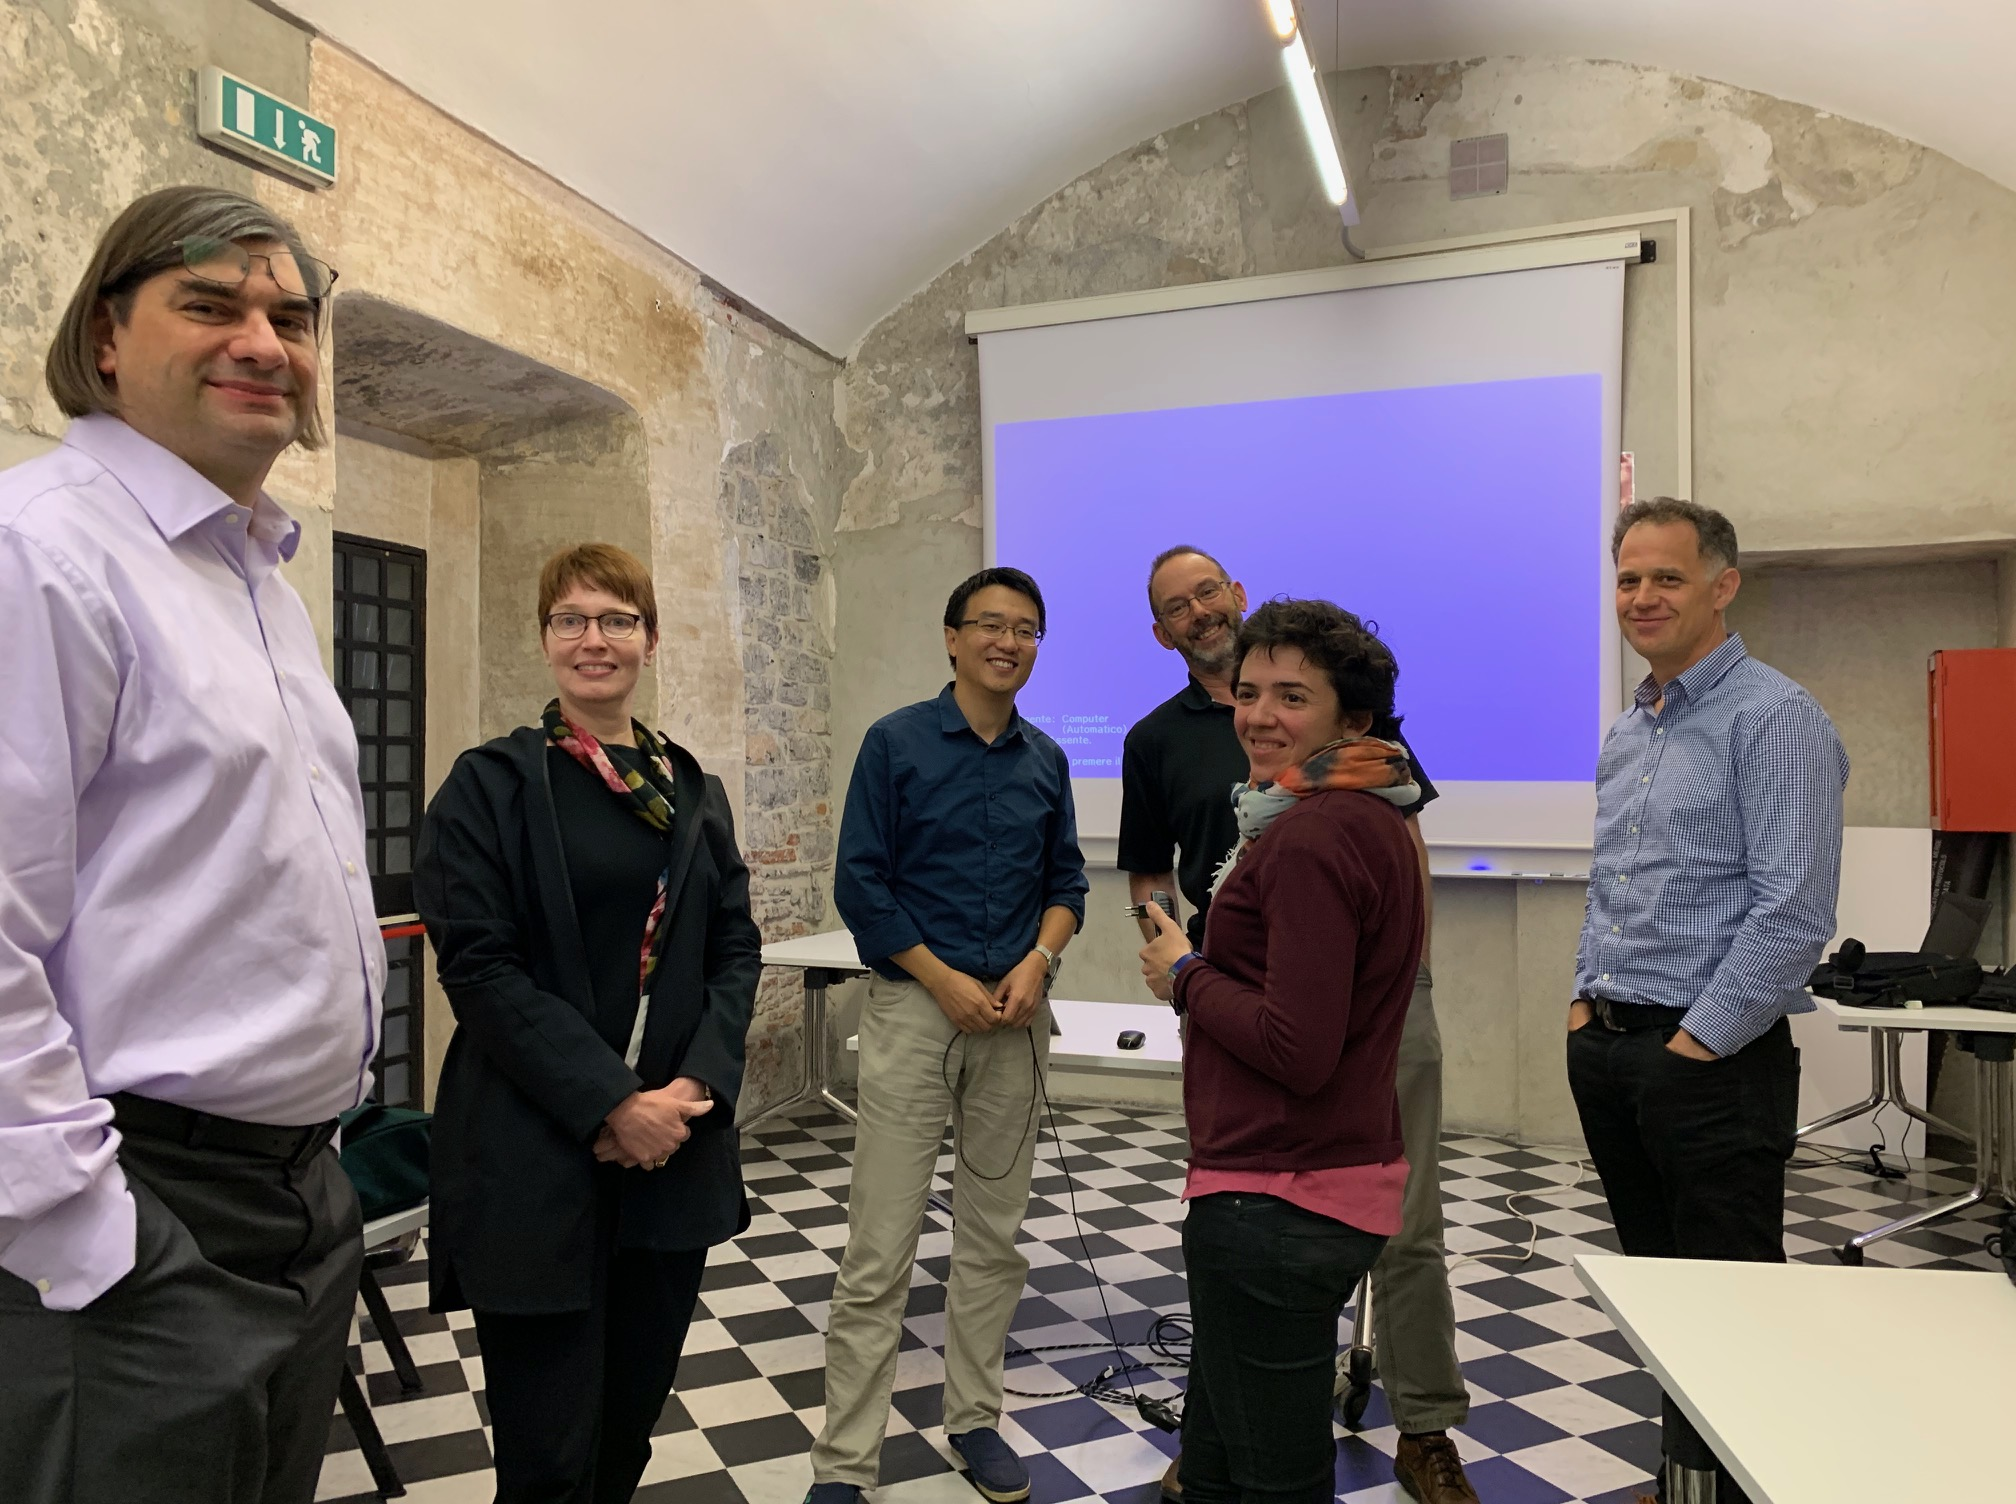 The conference of the AIRR Community and the iReceptor Plus Project in Genoa, Italy